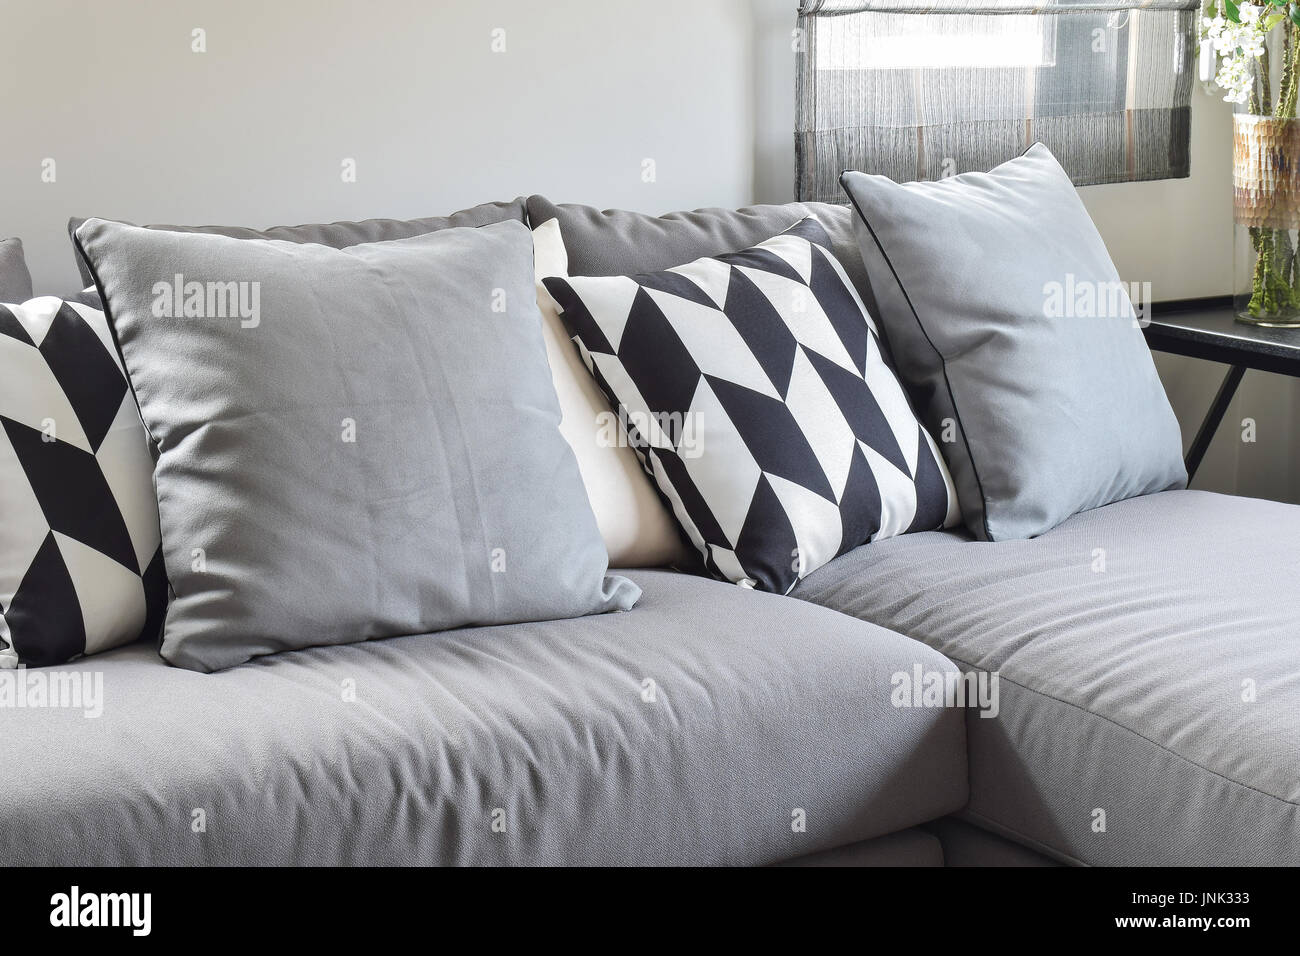 Black and white parallelogram pattern pillows on gray l shape comfy sofa - Stock Image